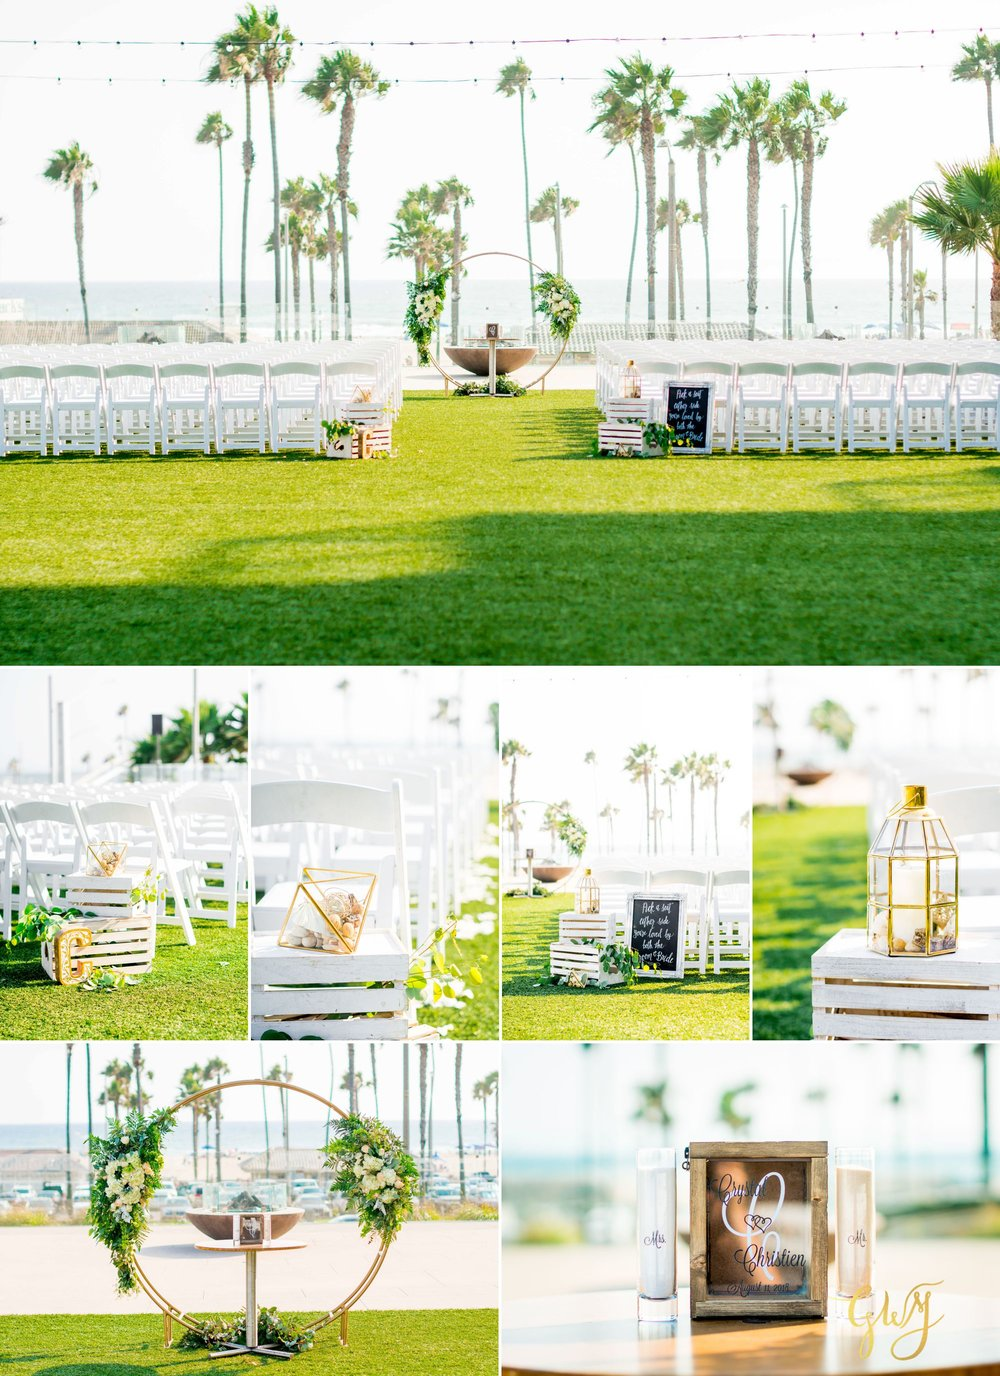 Christien + Crystal Pasea Hotel & Spa Huntington Beach Wedding by Glass Woods Media 37.jpg